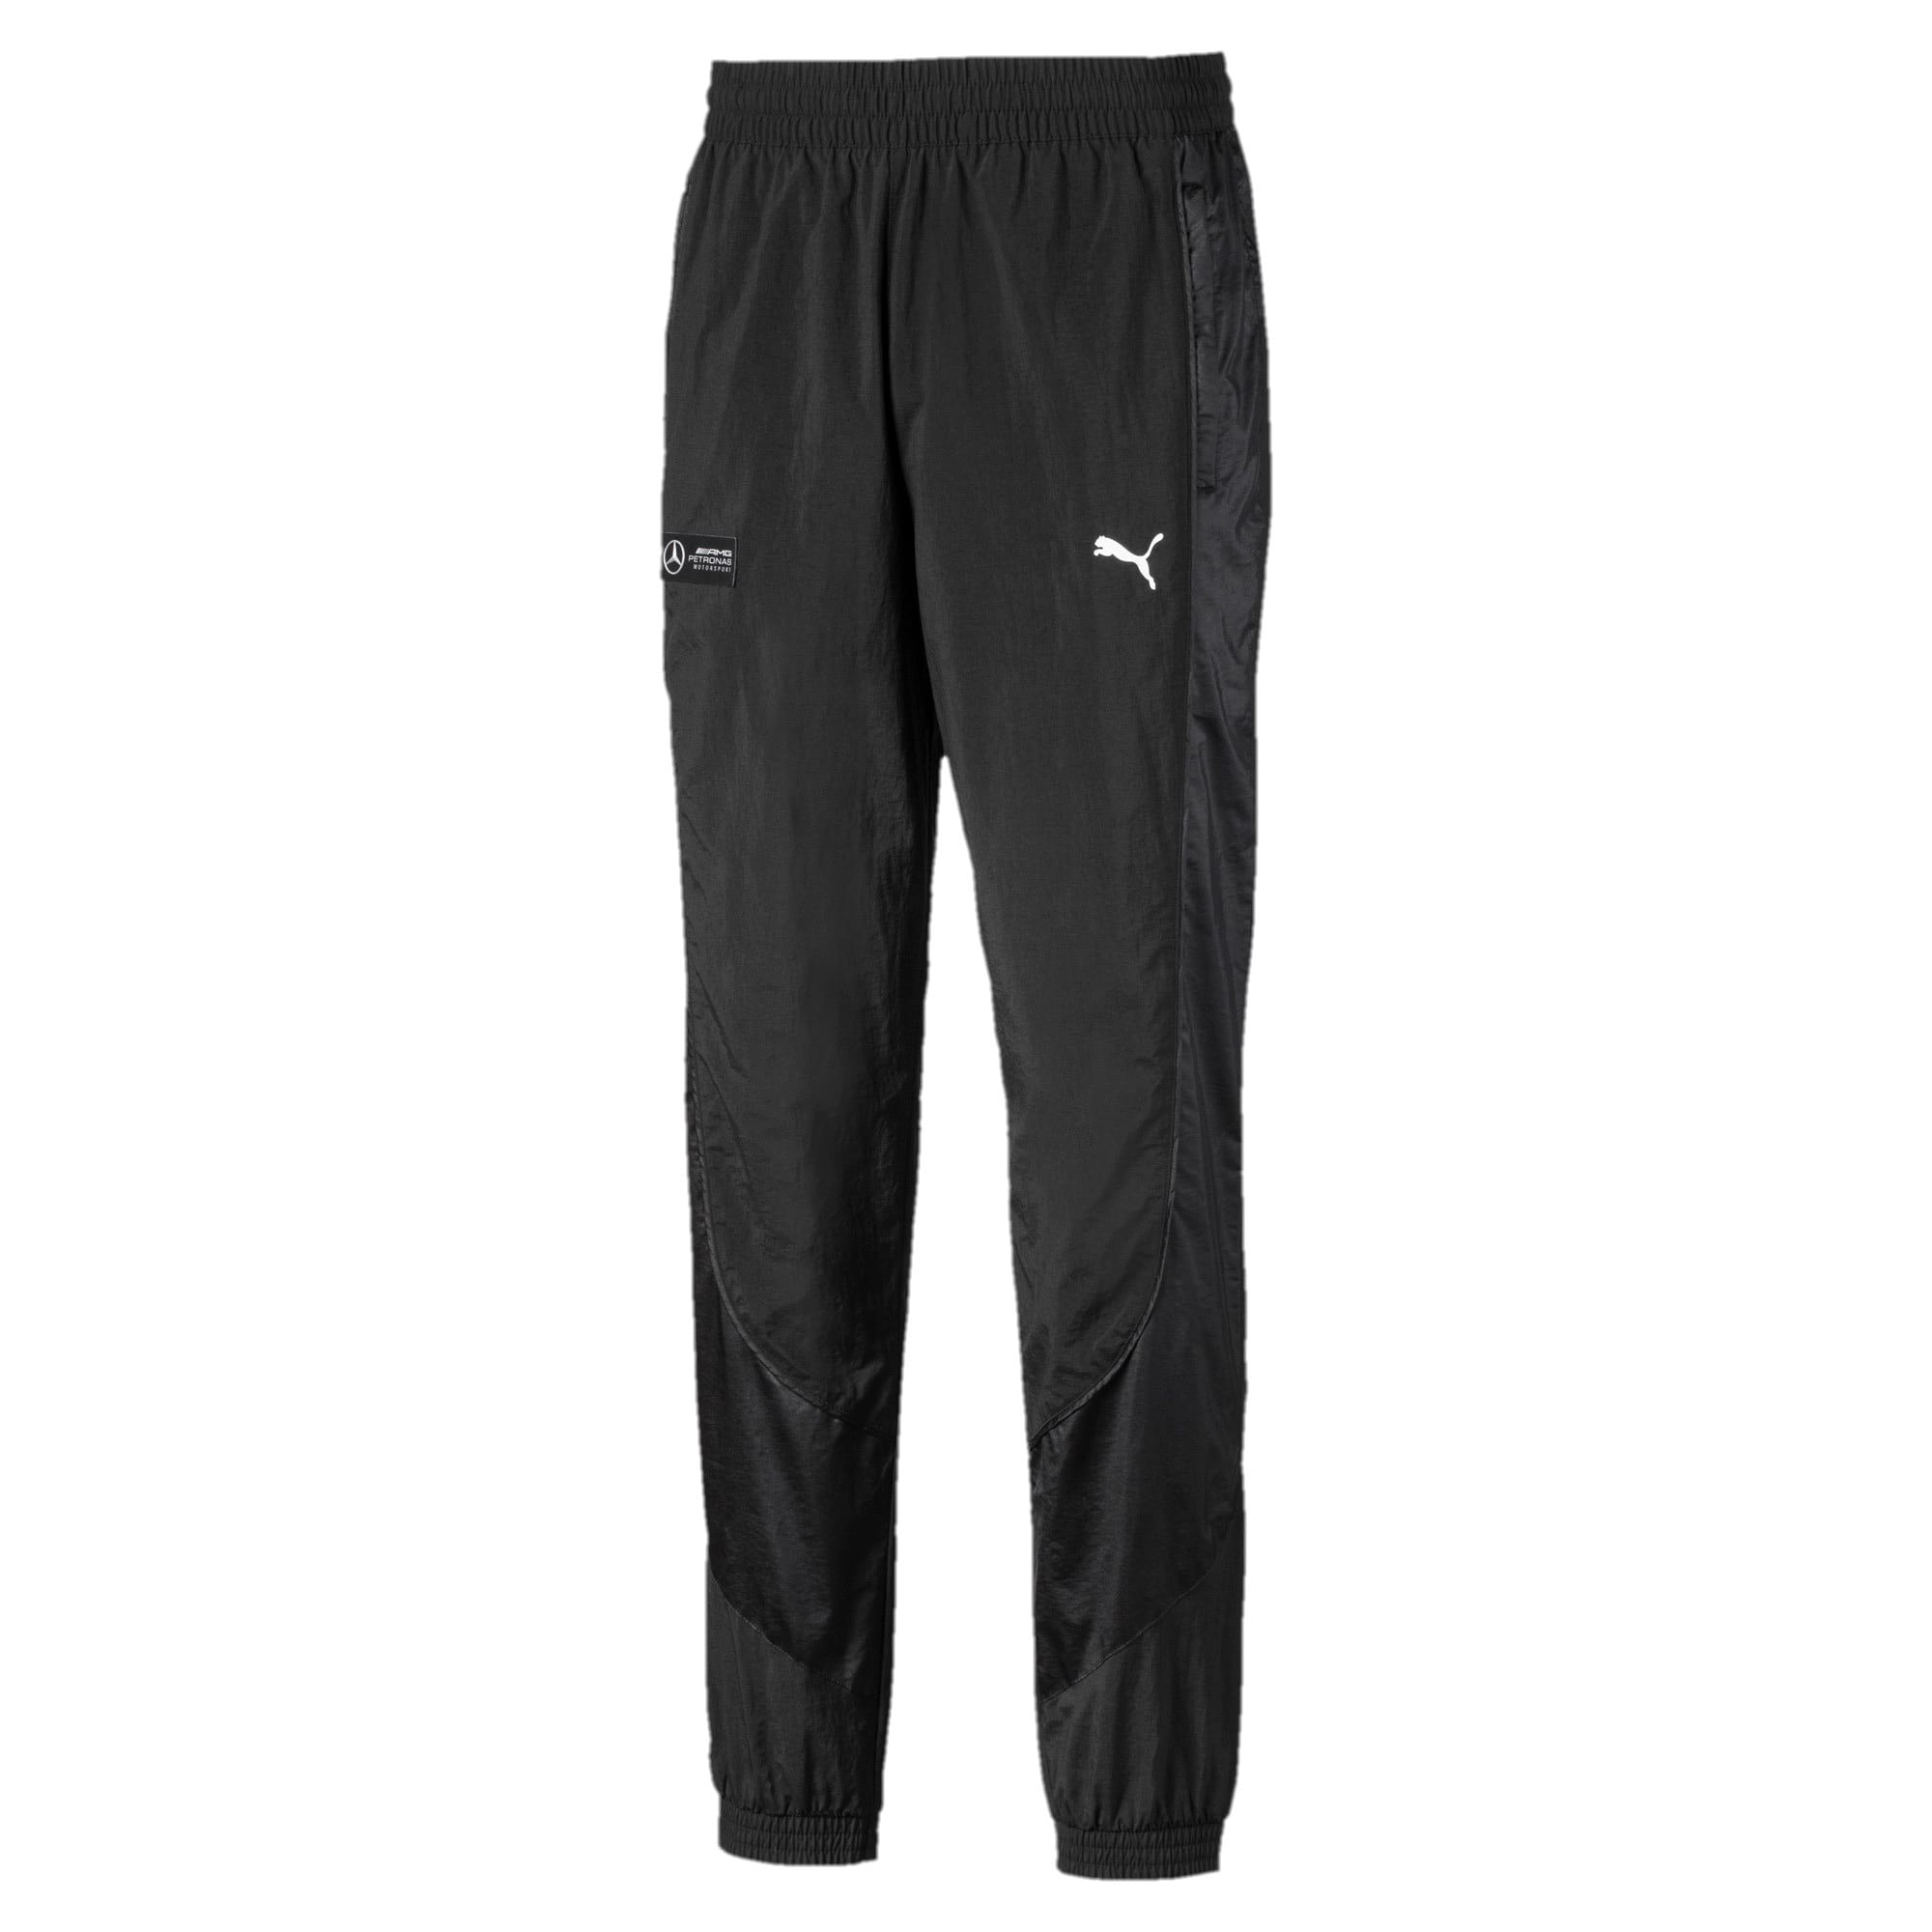 Thumbnail 1 of Mercedes Woven Men's Street Pants, Puma Black, medium